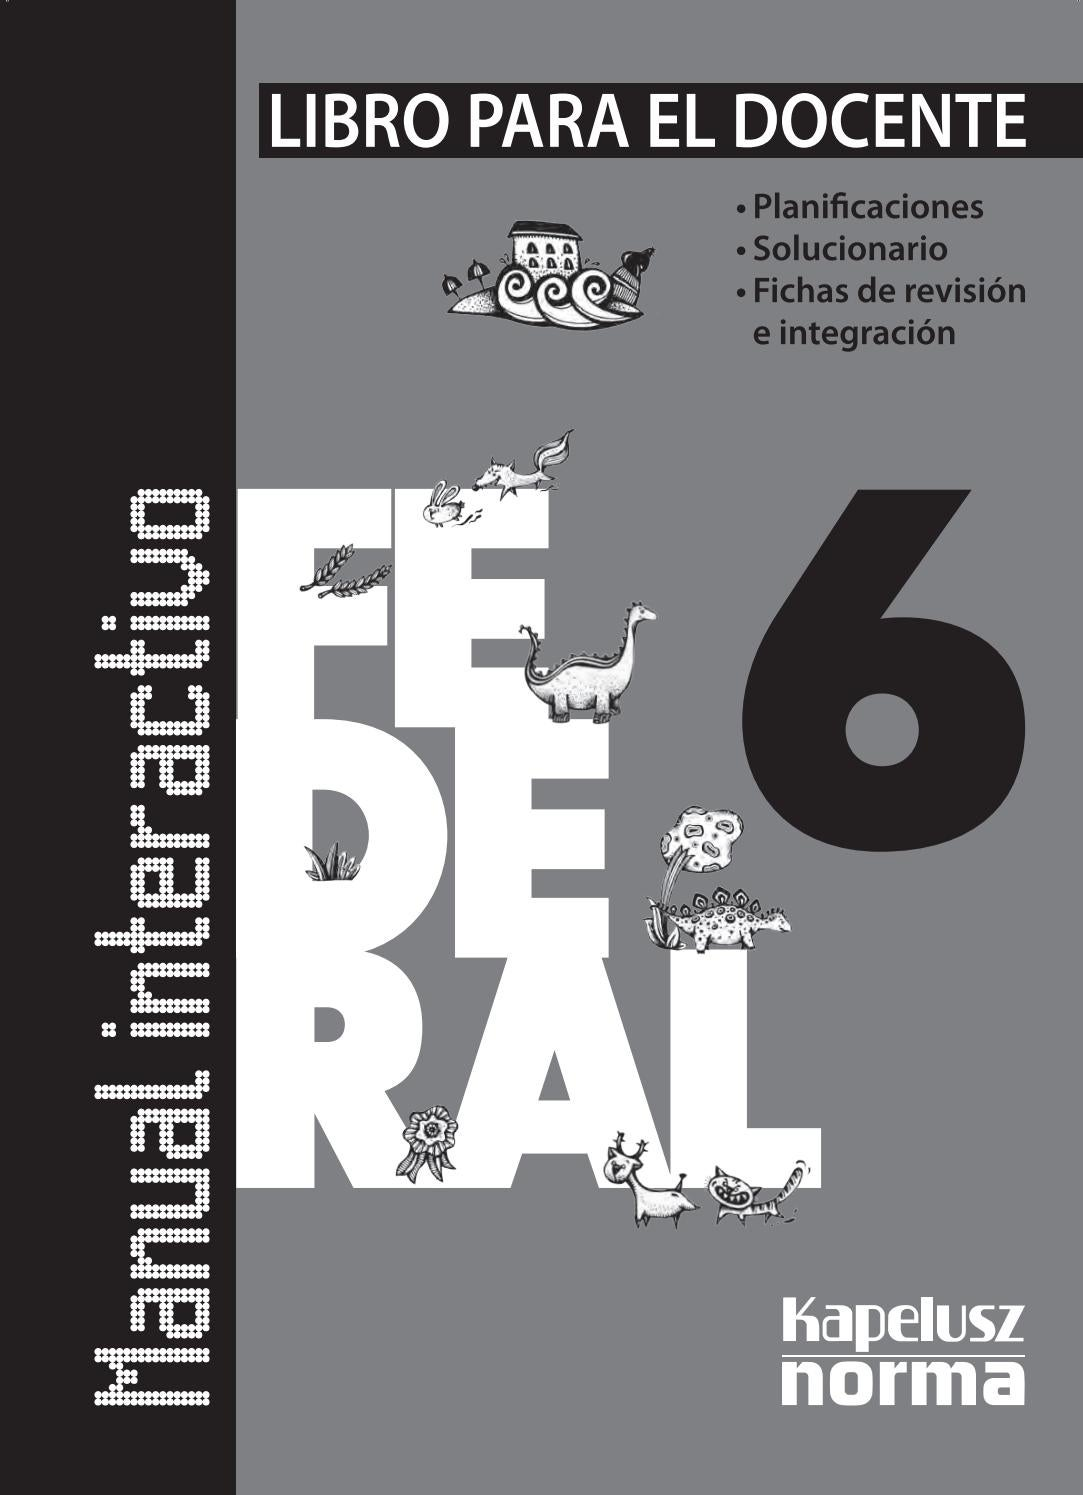 Libro El Secreto Gratis Gd Manual Interactivo Fed 6 By Kapelusz Norma Issuu